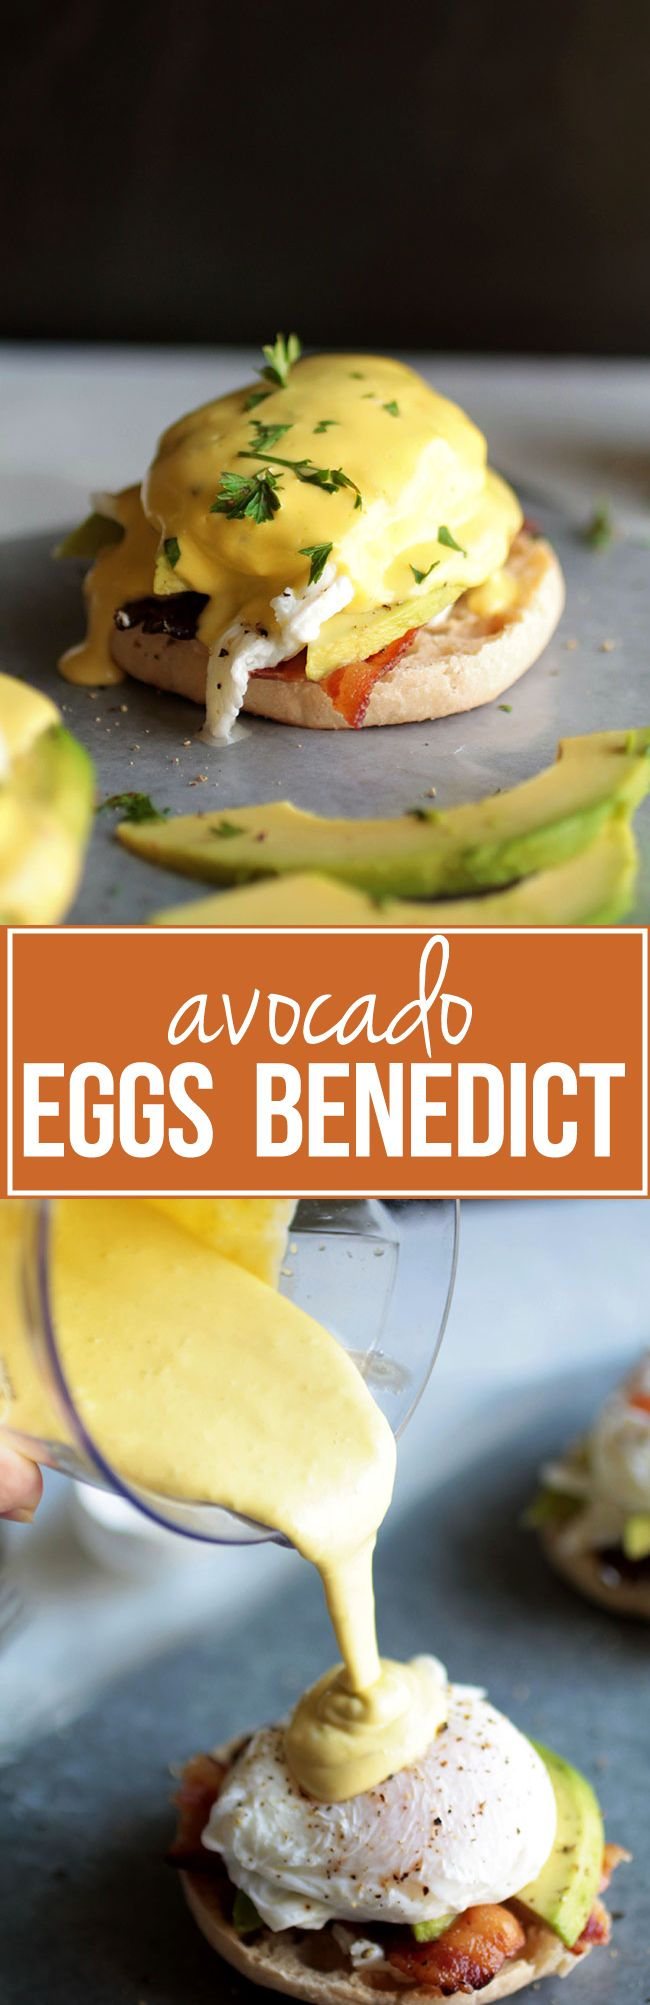 Avocado Eggs Benedict - Shake up your breakfast routine with this deceptively easy eggs benedict with bacon and goat cheese!